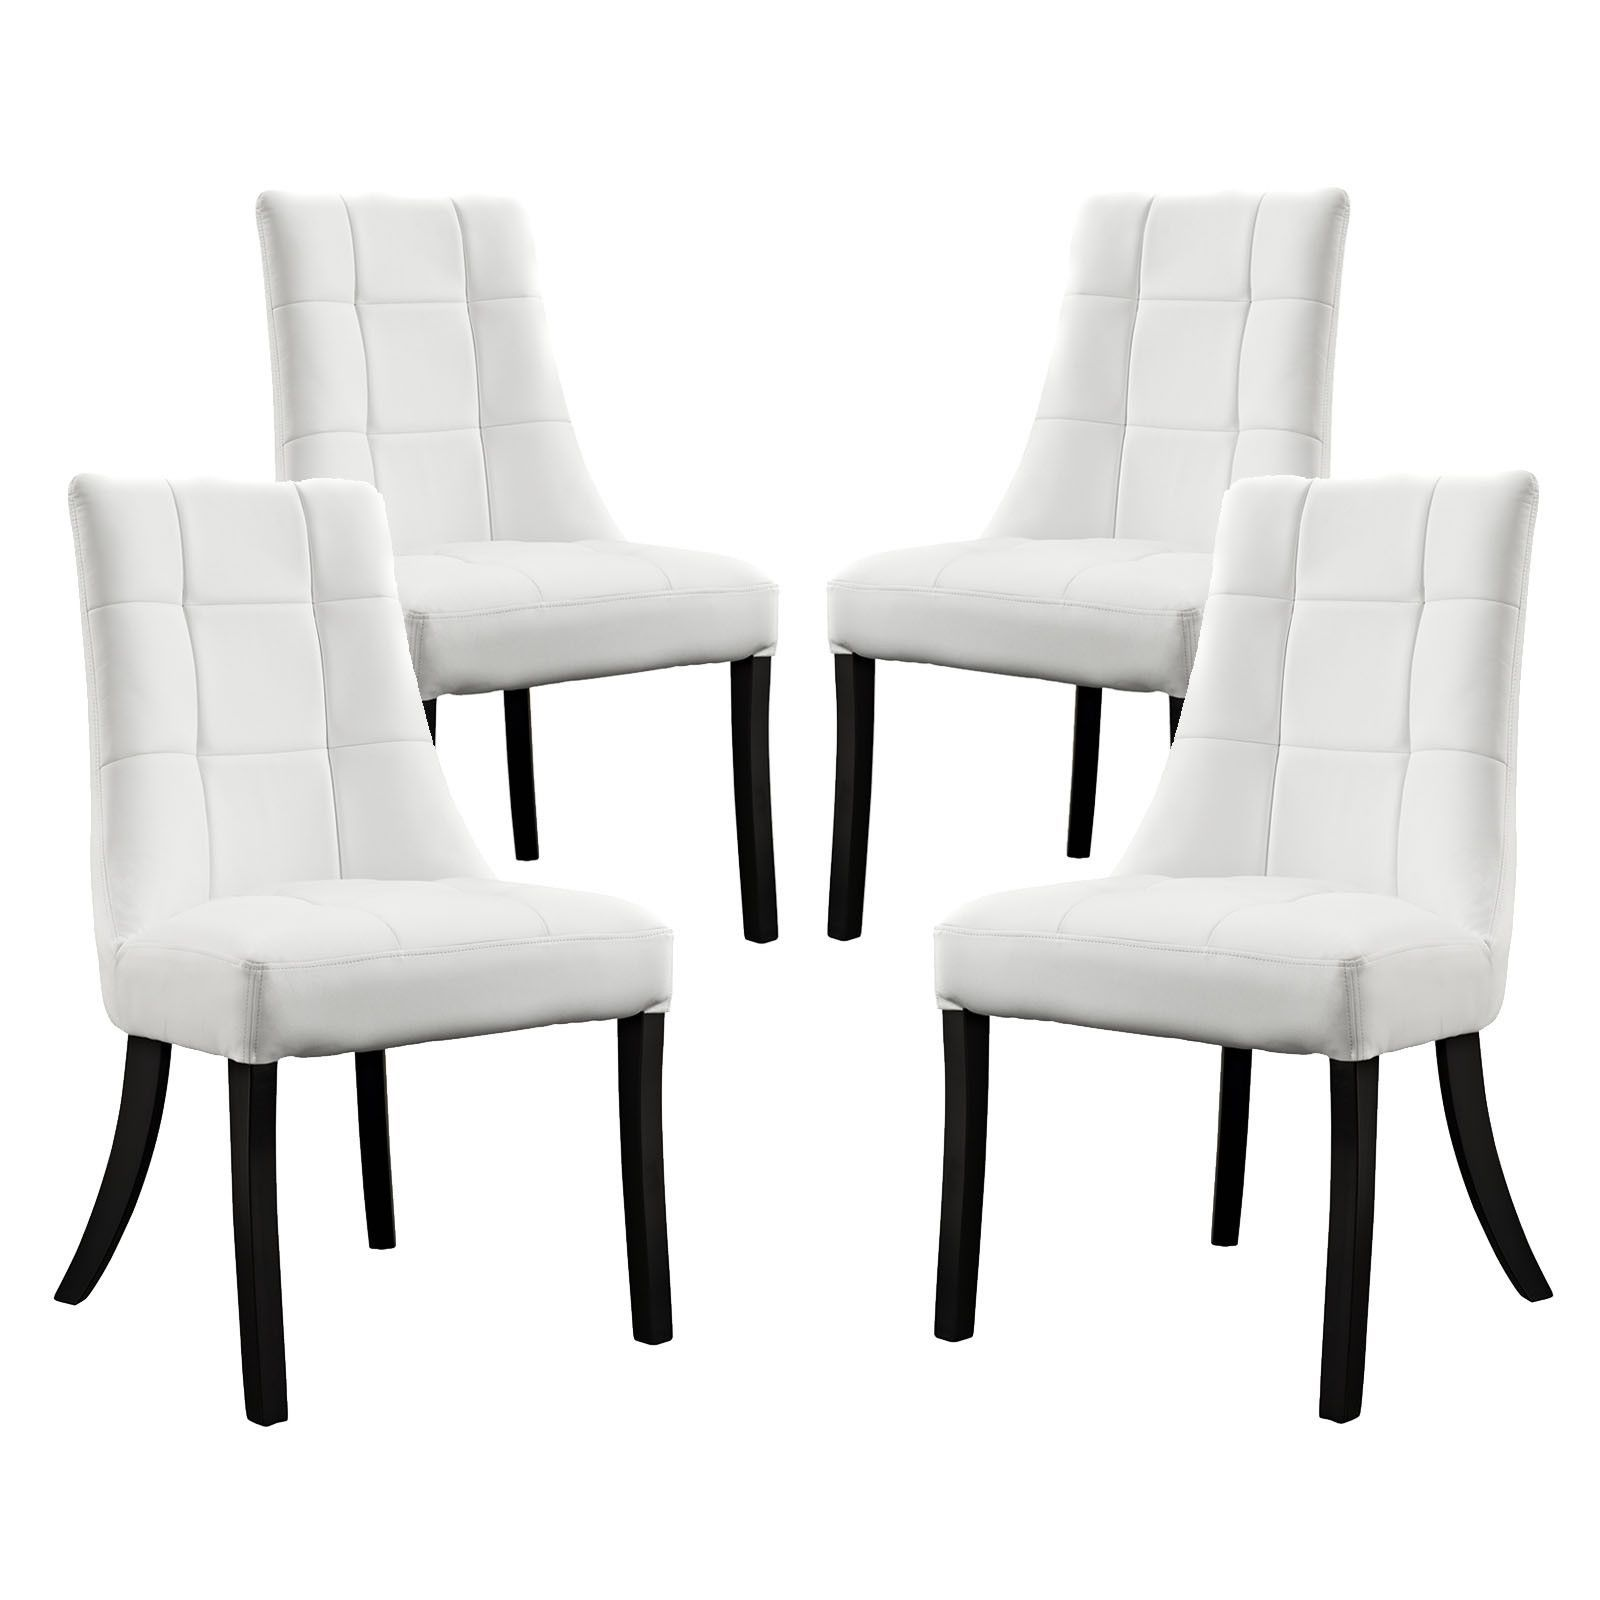 Buy Noblesse Vinyl Dining Chair Set Of 4 At Harvey & Haley For Extraordinary Dining Room Chair Set Of 4 2018